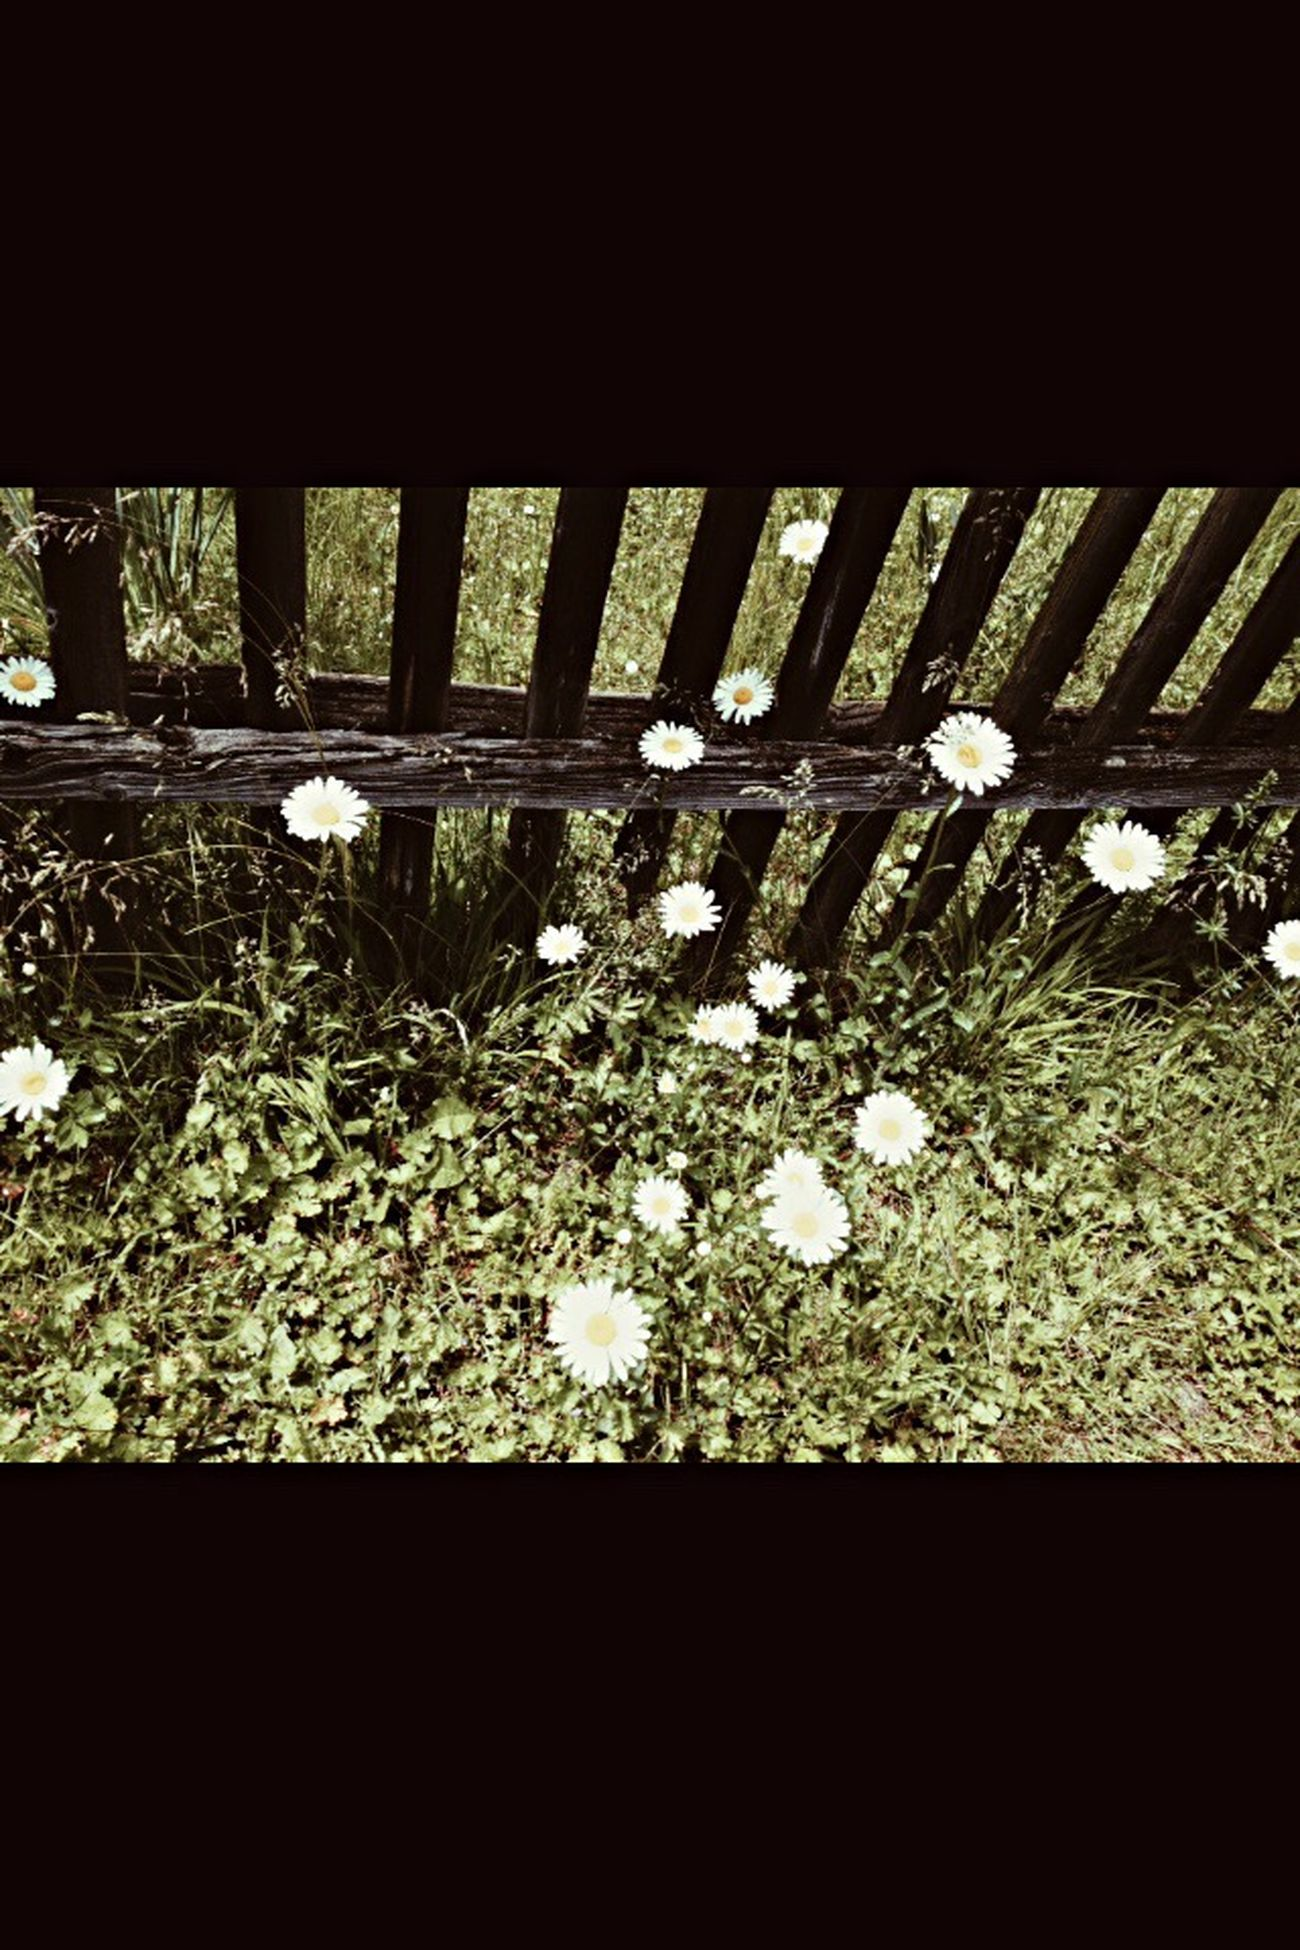 Daisy Cellulartelephonecamera